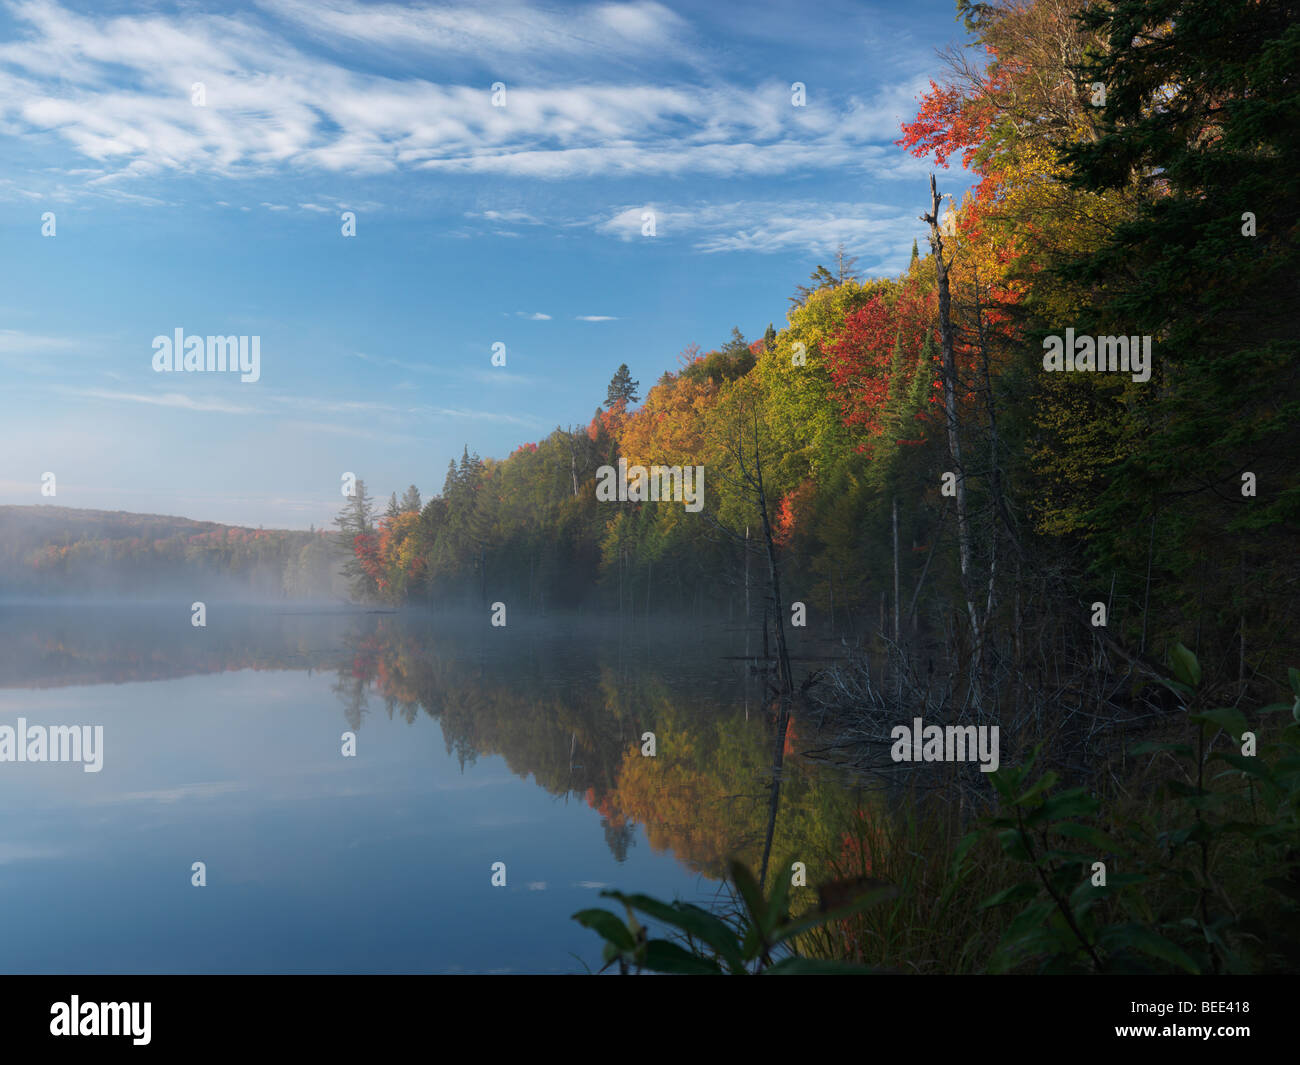 Mist over Smoke lake at dawn. Beautiful fall nature scenery - Stock Image